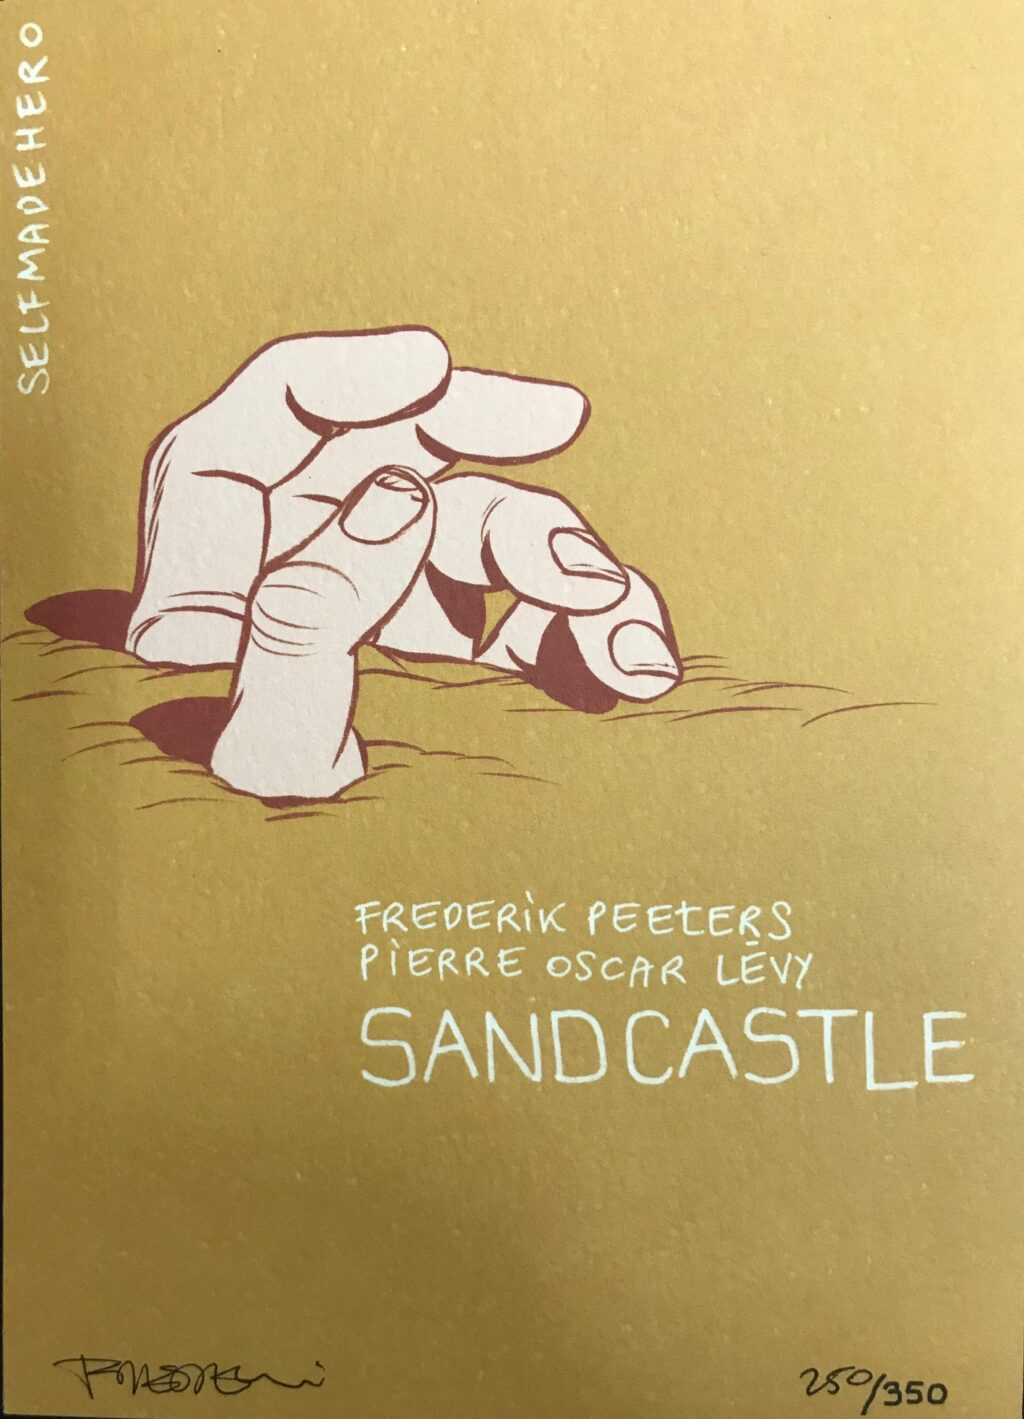 Sandcastle by Pierre Oscar Levy and Frederik Peeters 1024x1419 - M. Night Shyamalan's OLD Plot Revealed: A Dead Body, A Beach & Something Unnatural